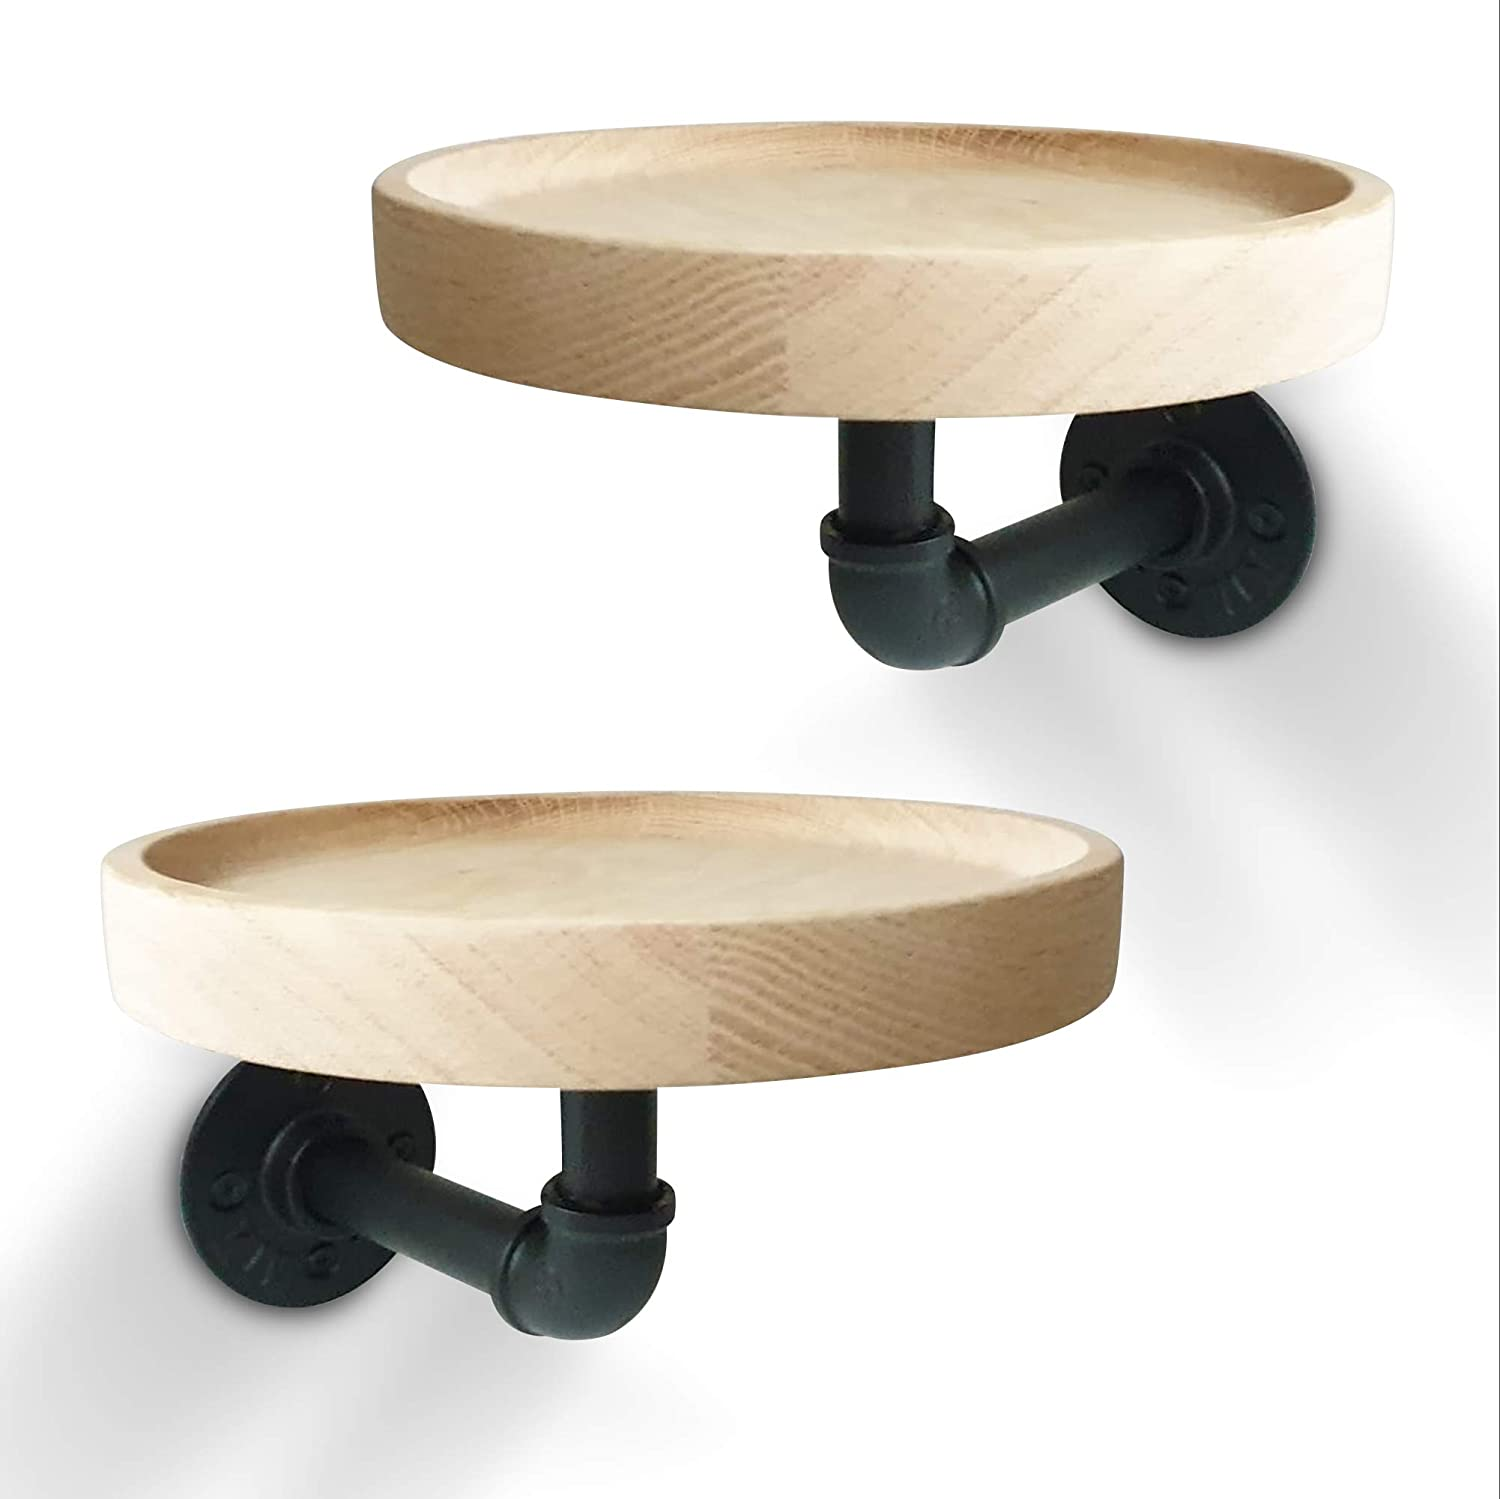 Round Oak Wood Rustic Floating Shelves, Deep Wall Hanging Shelf with Metal Industrial Pipe Brackets, 7.1 inches Diameter. Room Décor, Home Décor, Kitchen, Bedroom, Bathroom, Office Storage (2 Pack)